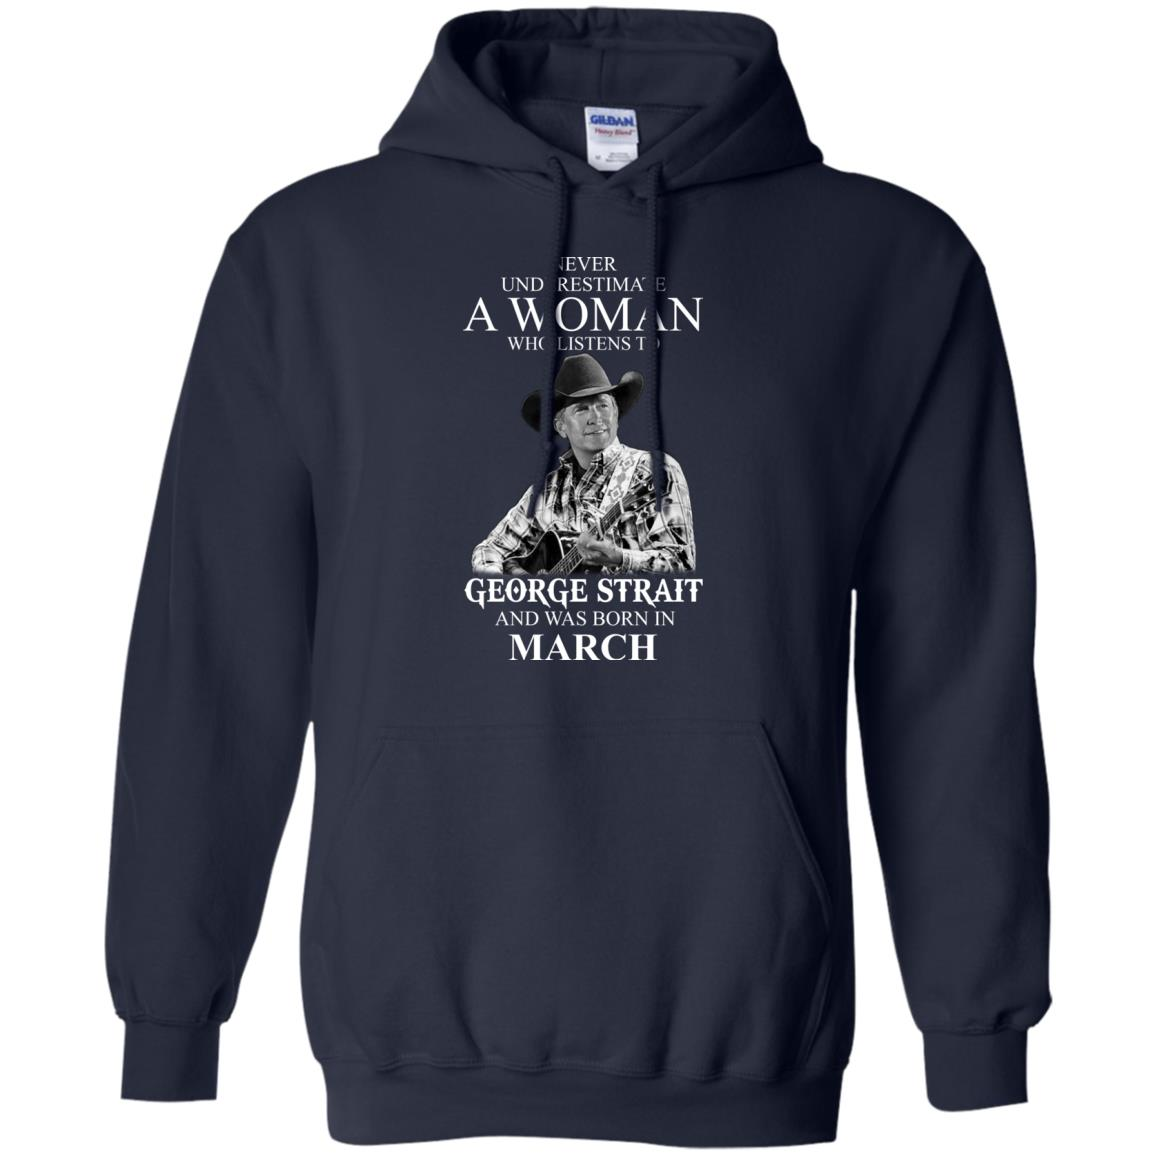 image 439 - Never Underestimate A Woman Who Listens To George Strait And Was Born In March shirt